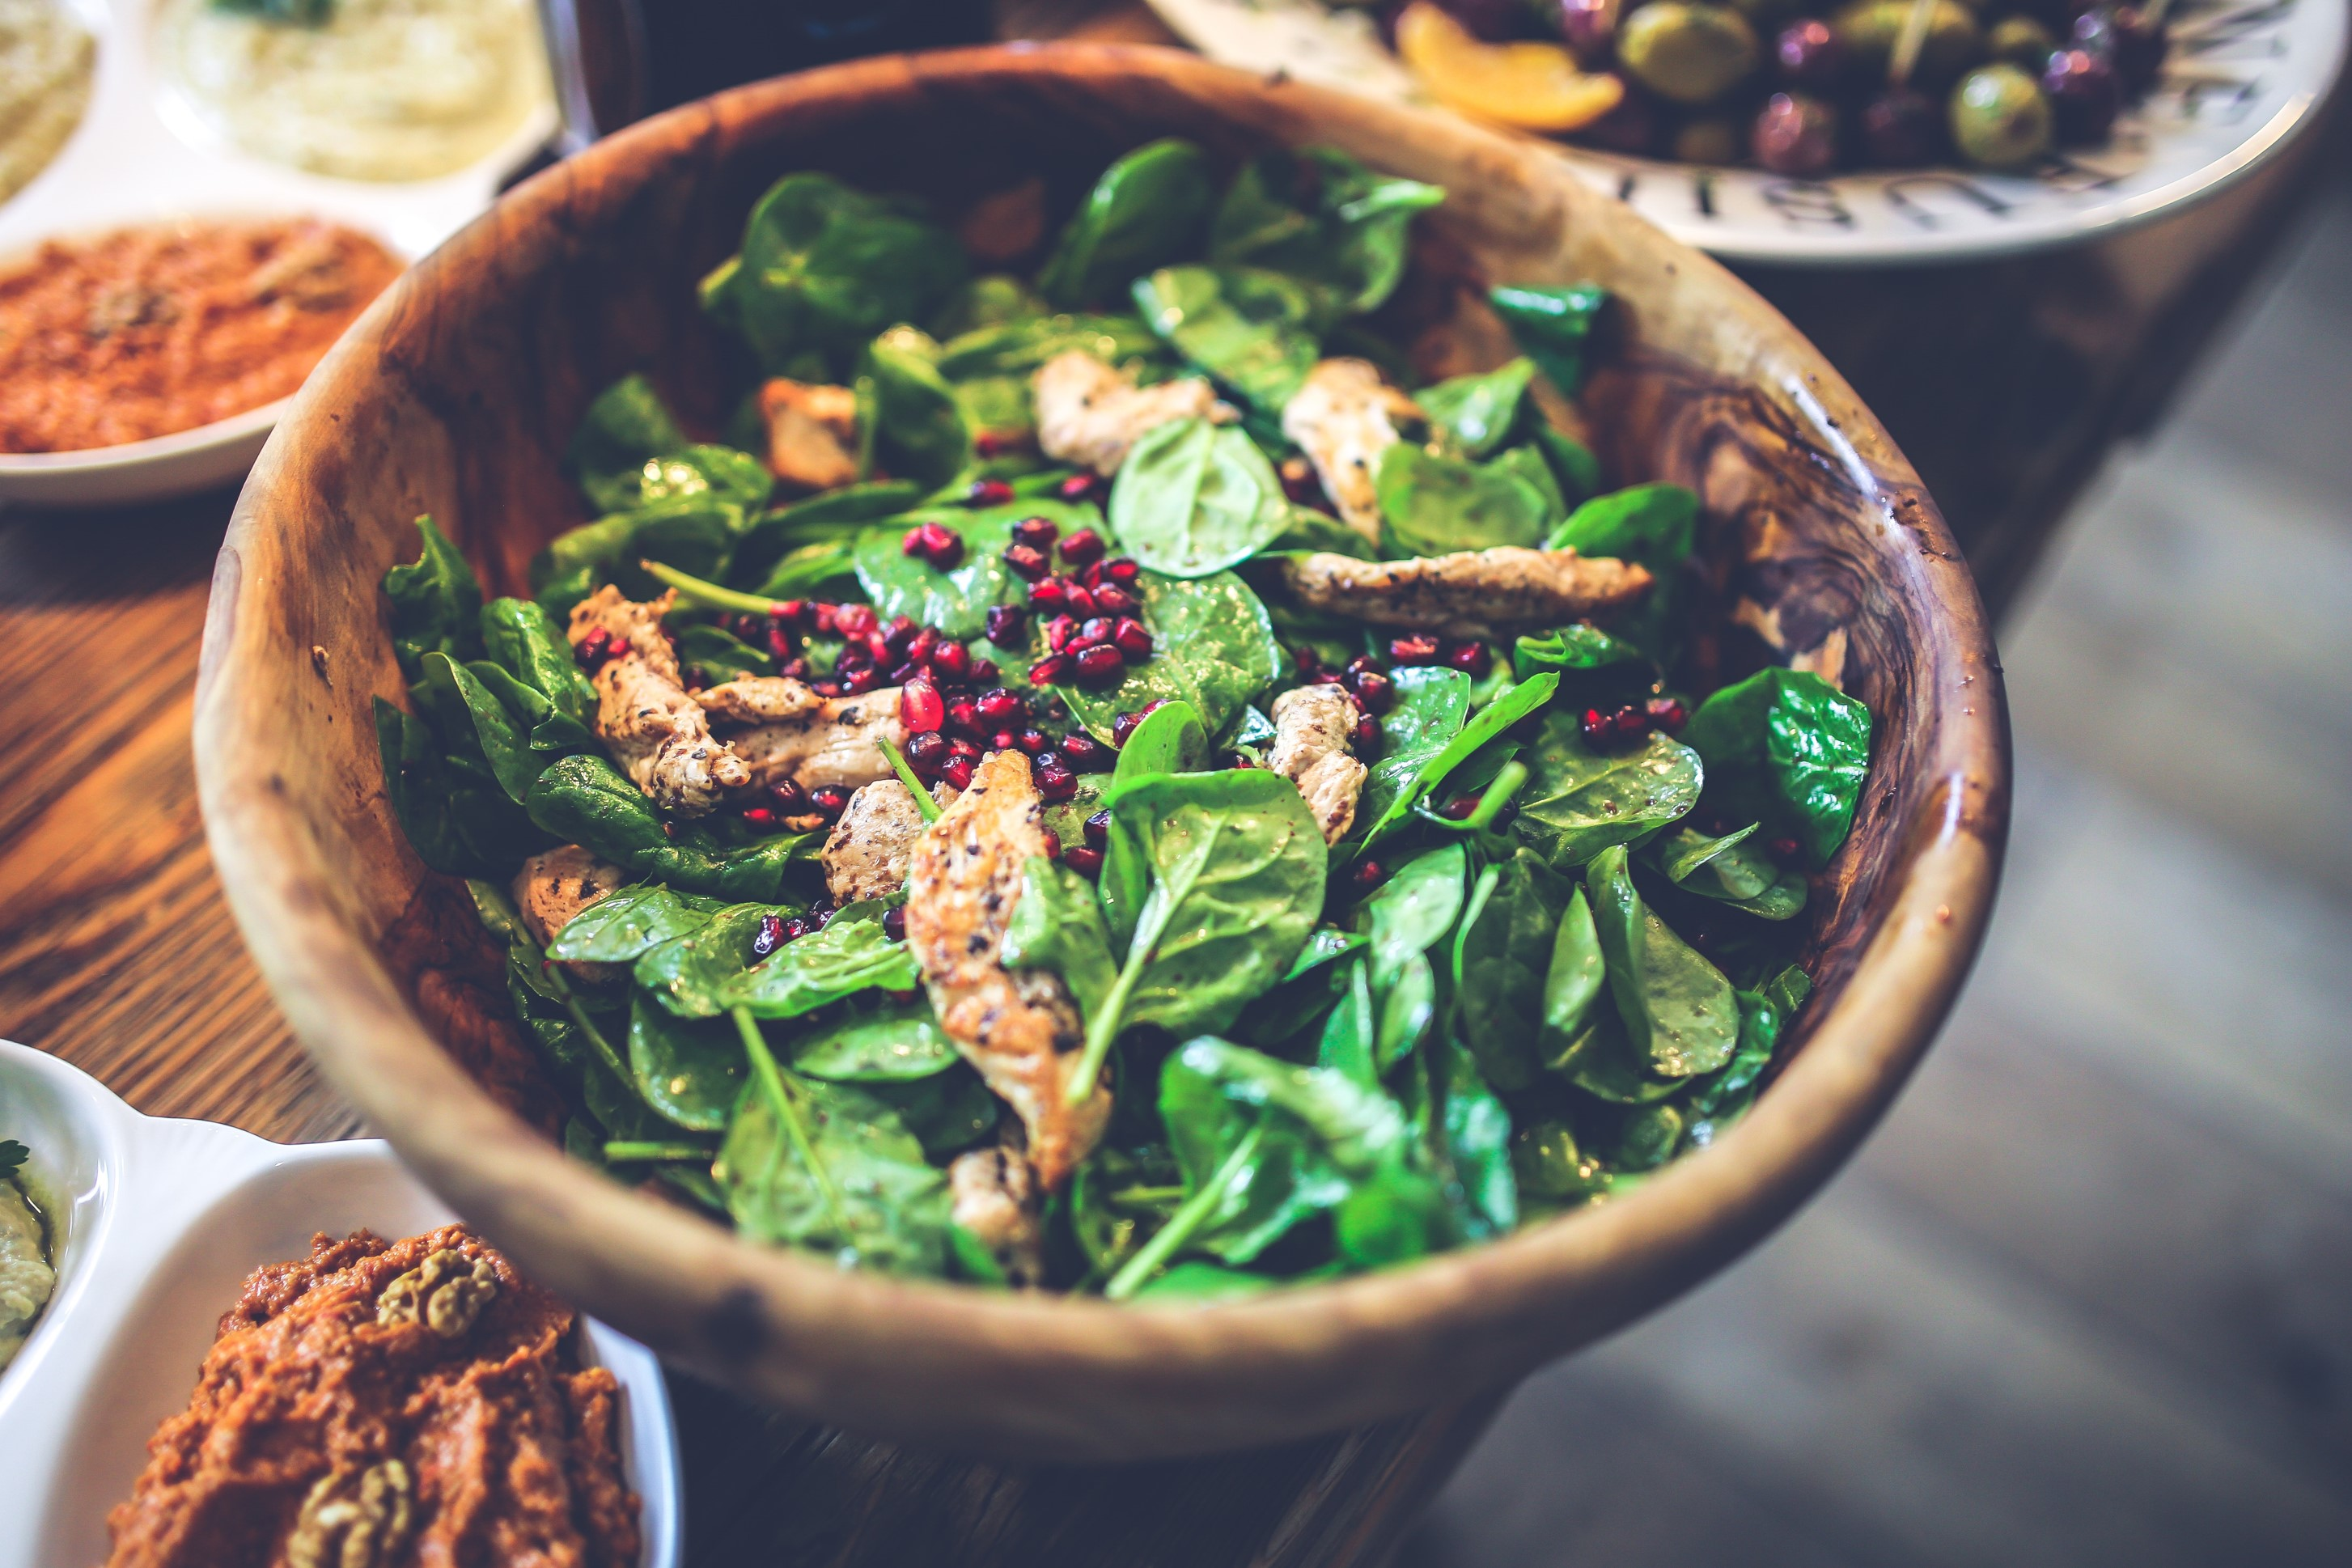 salad with chicken strips, leaves. and pomegranate